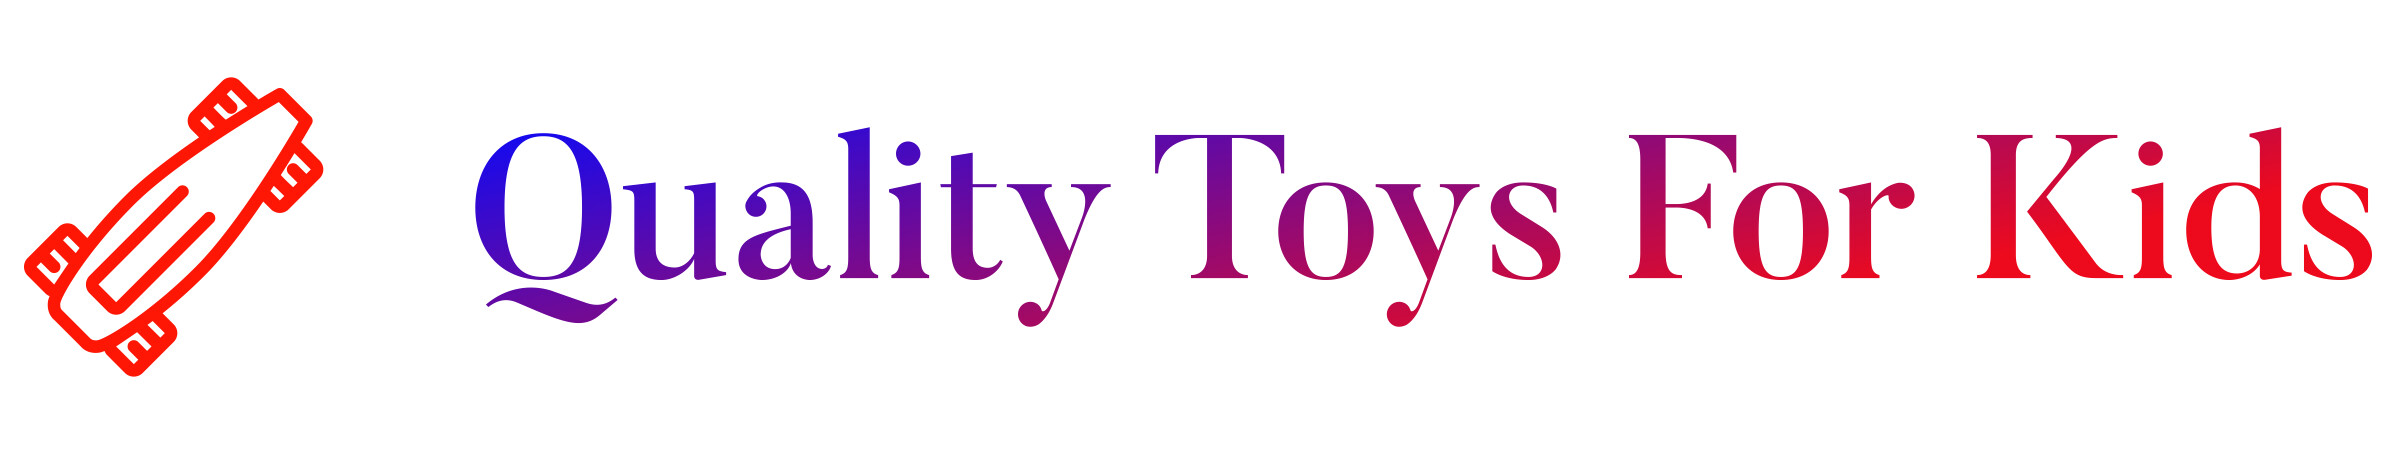 Quality Toys For Kids